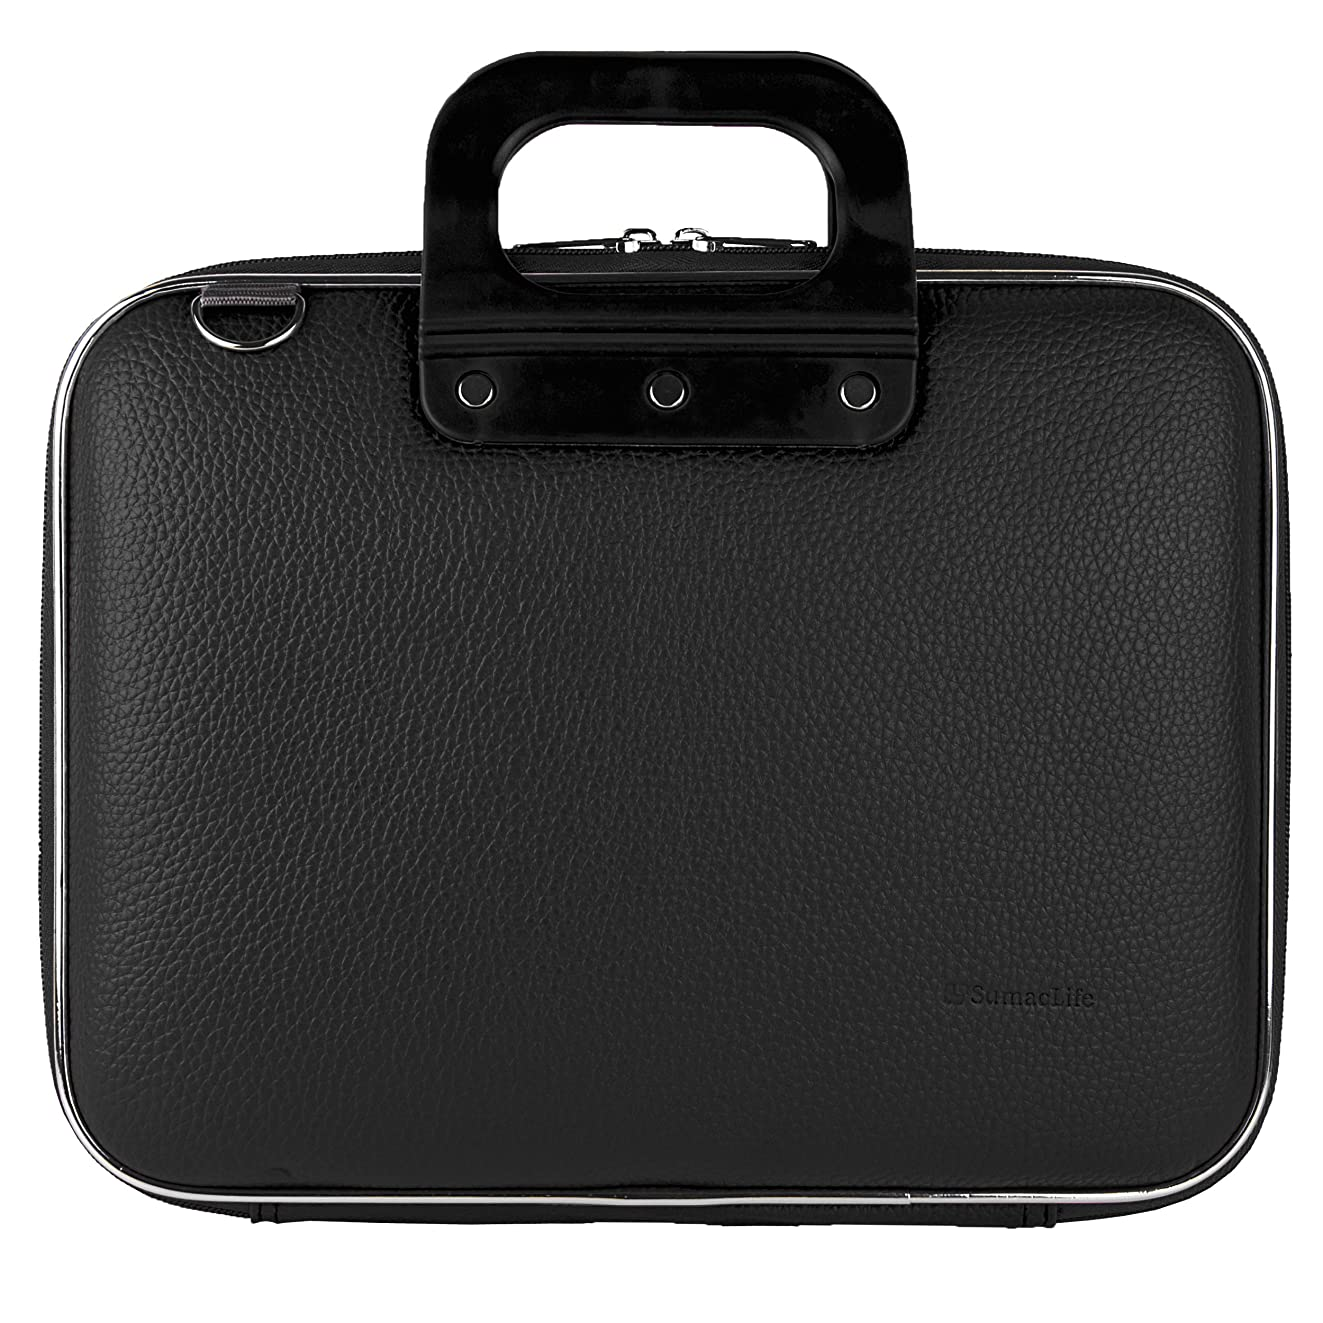 SumacLife Cady 12.9-inch Tablet Bag for Apple iPad Pro (Black)